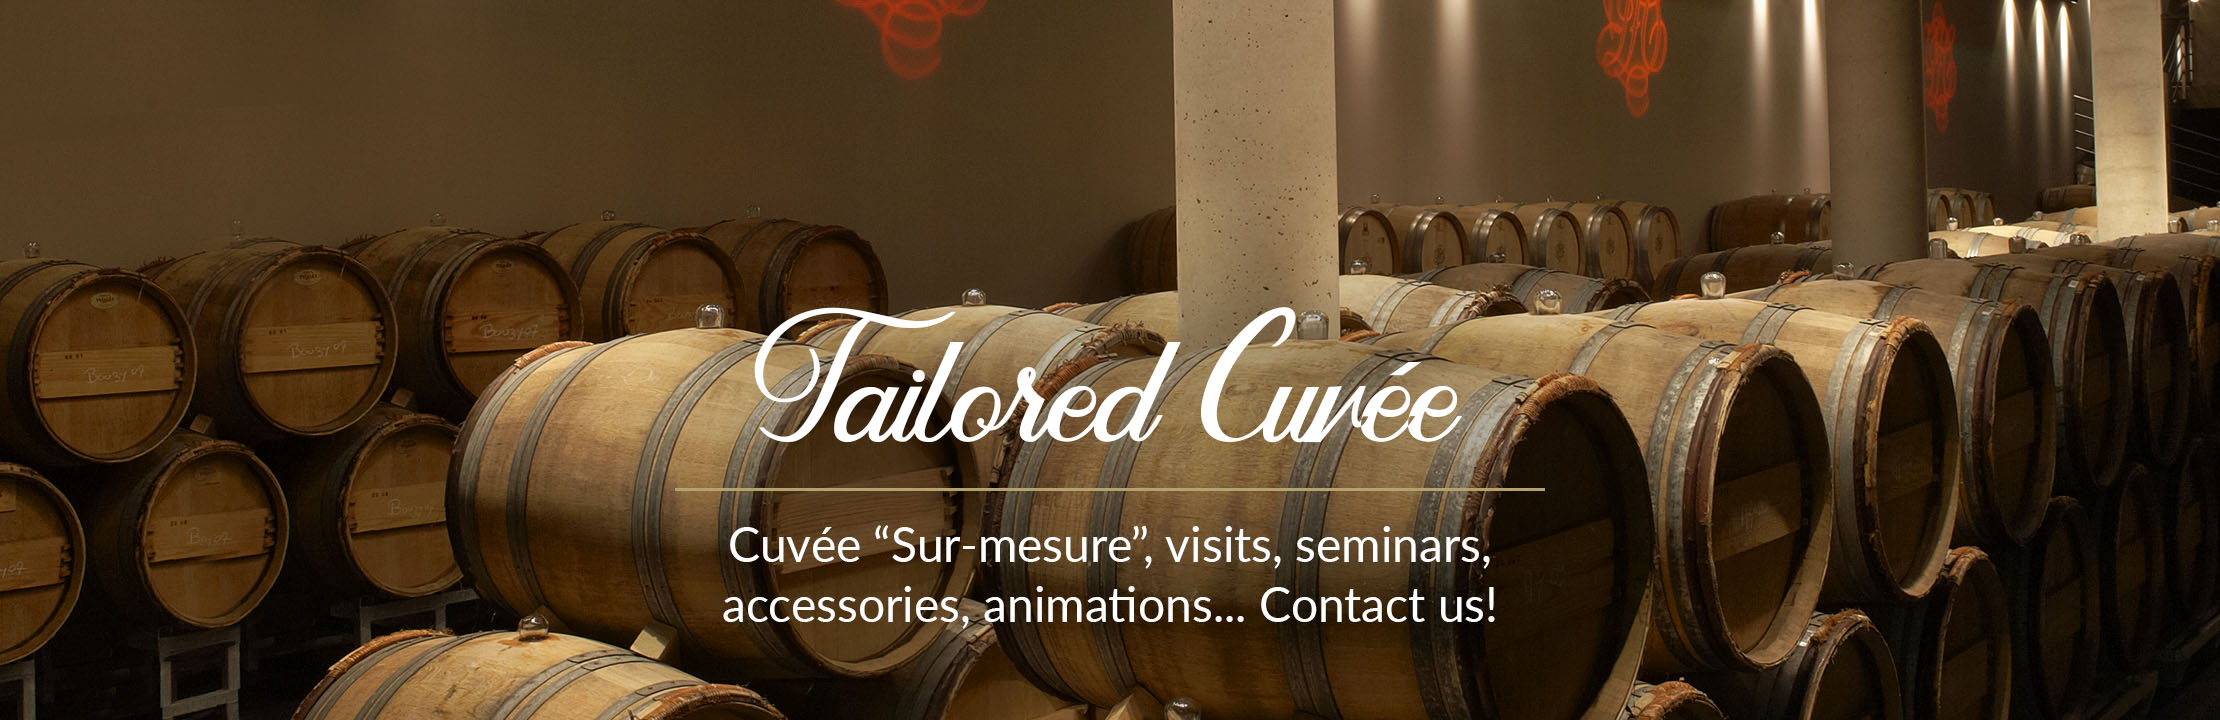 Cuvée « Sur-mesure », visits, seminars, accessories, animations ... Contact us!